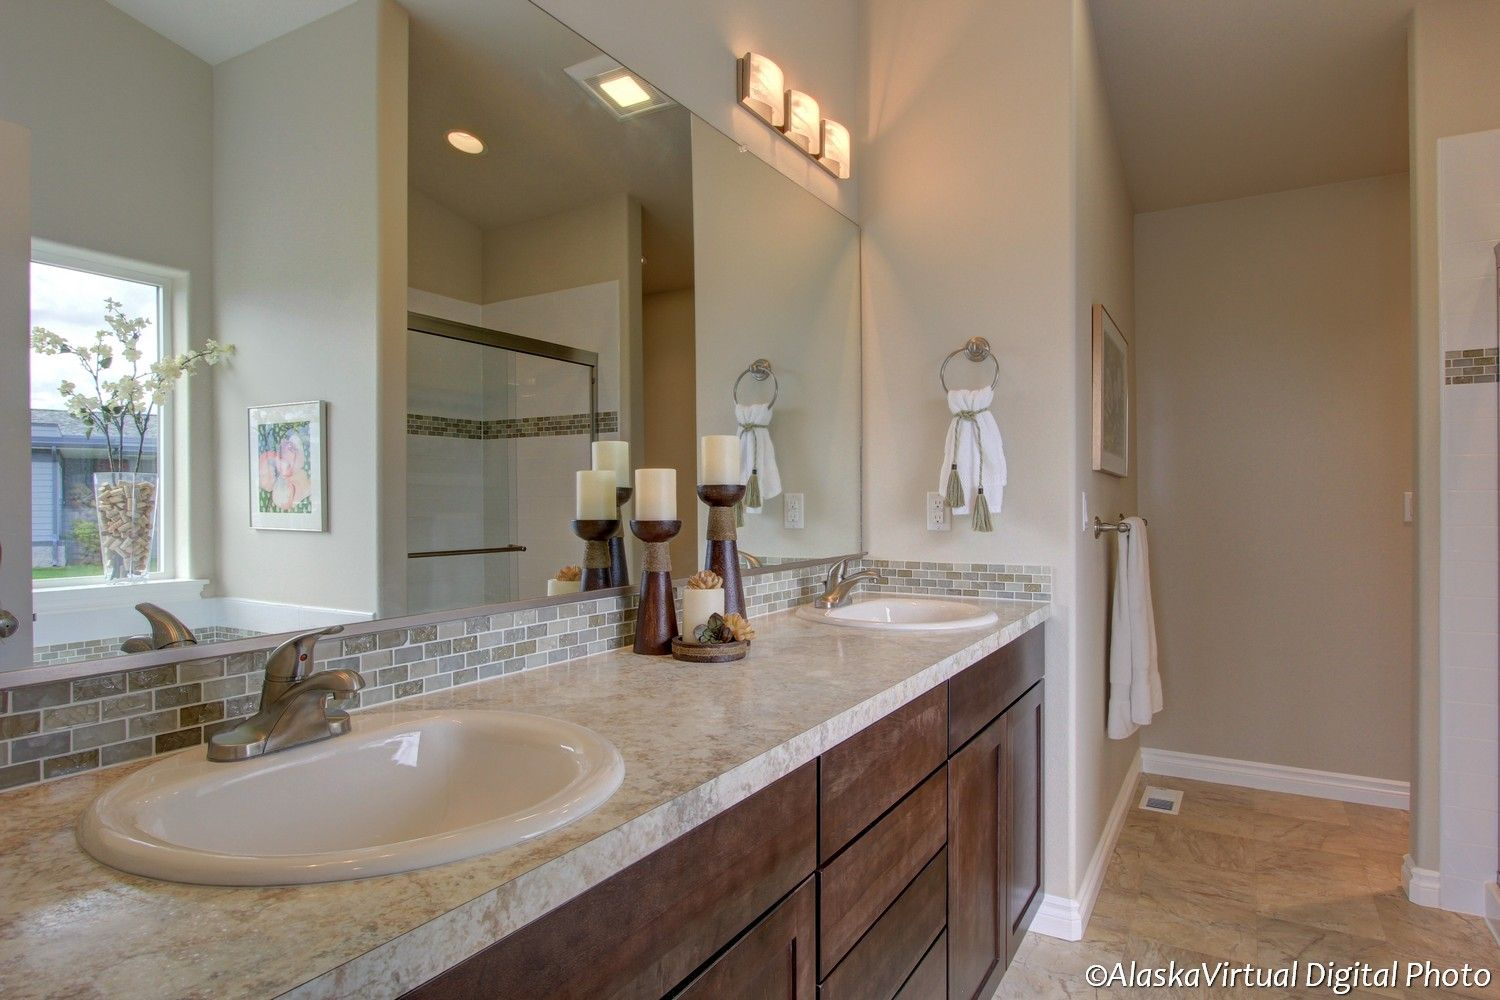 Bathroom featured in the Chugach 2338 By Spinell Homes in Anchorage, AK